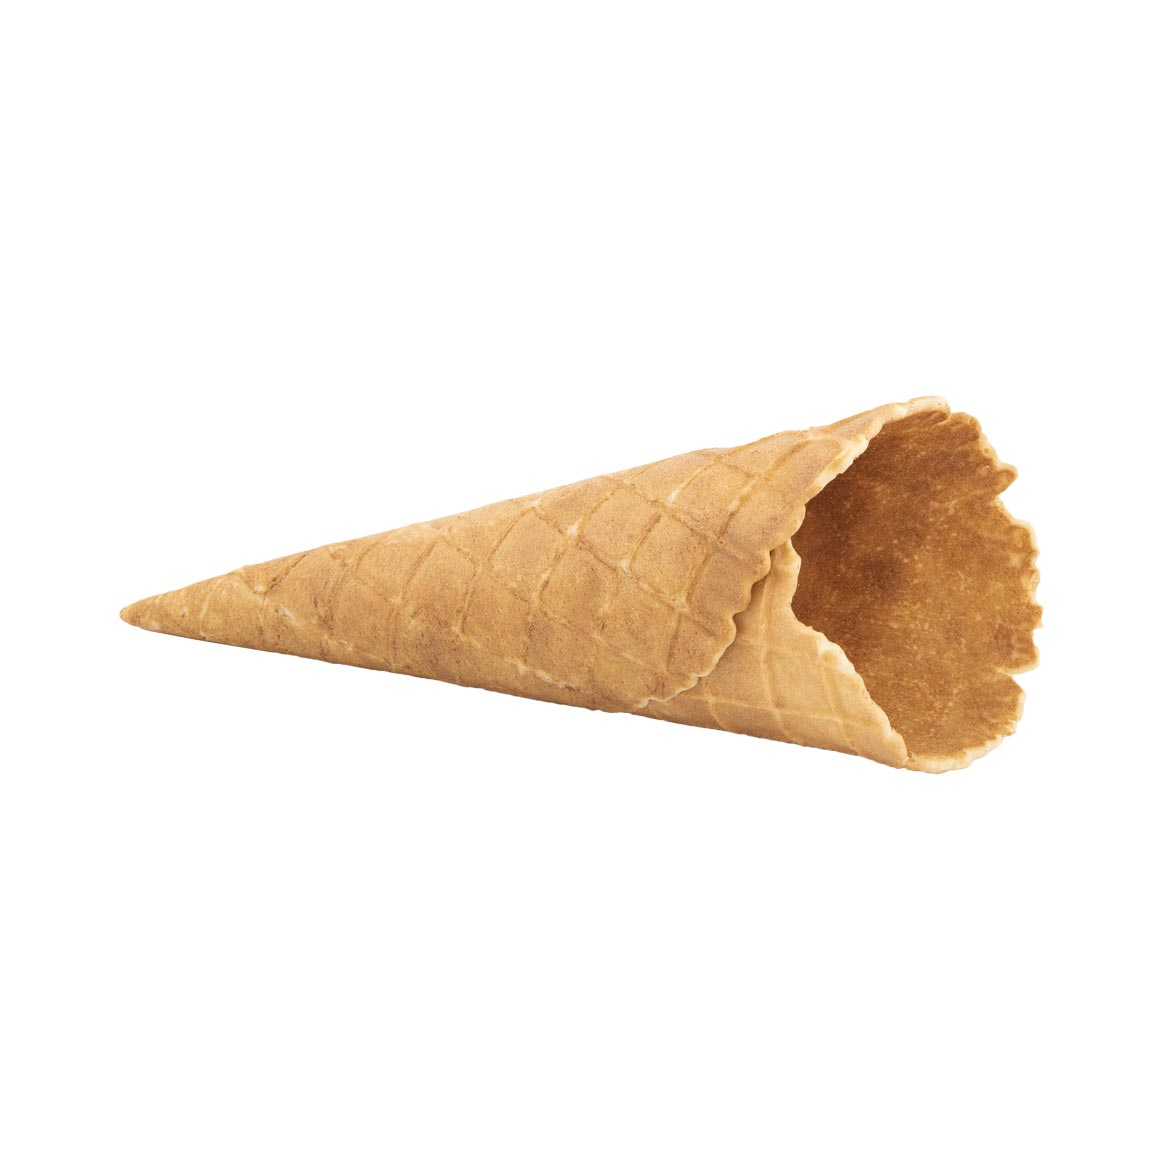 Ice cream cones woolworths